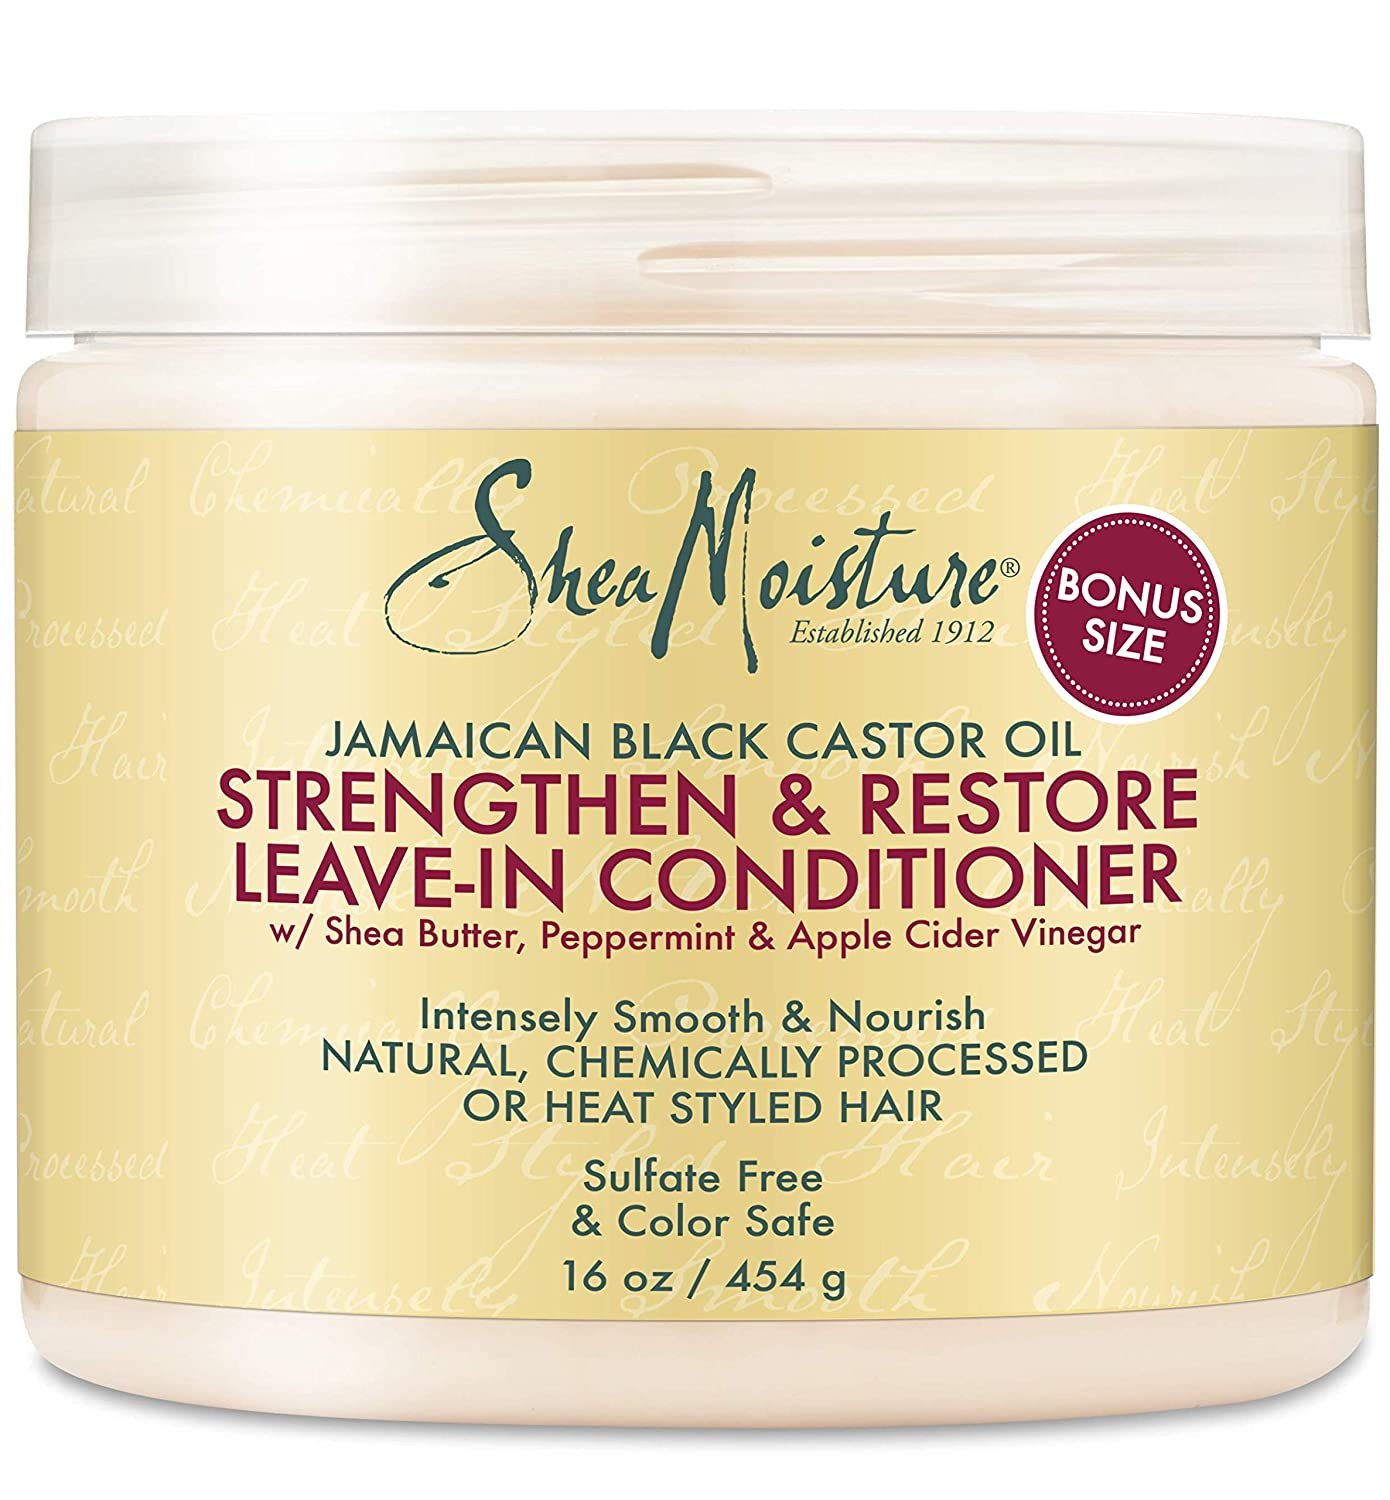 Top 10 Best Shampoo and Conditioner for Curly Hair Men Reviews in 2020 10